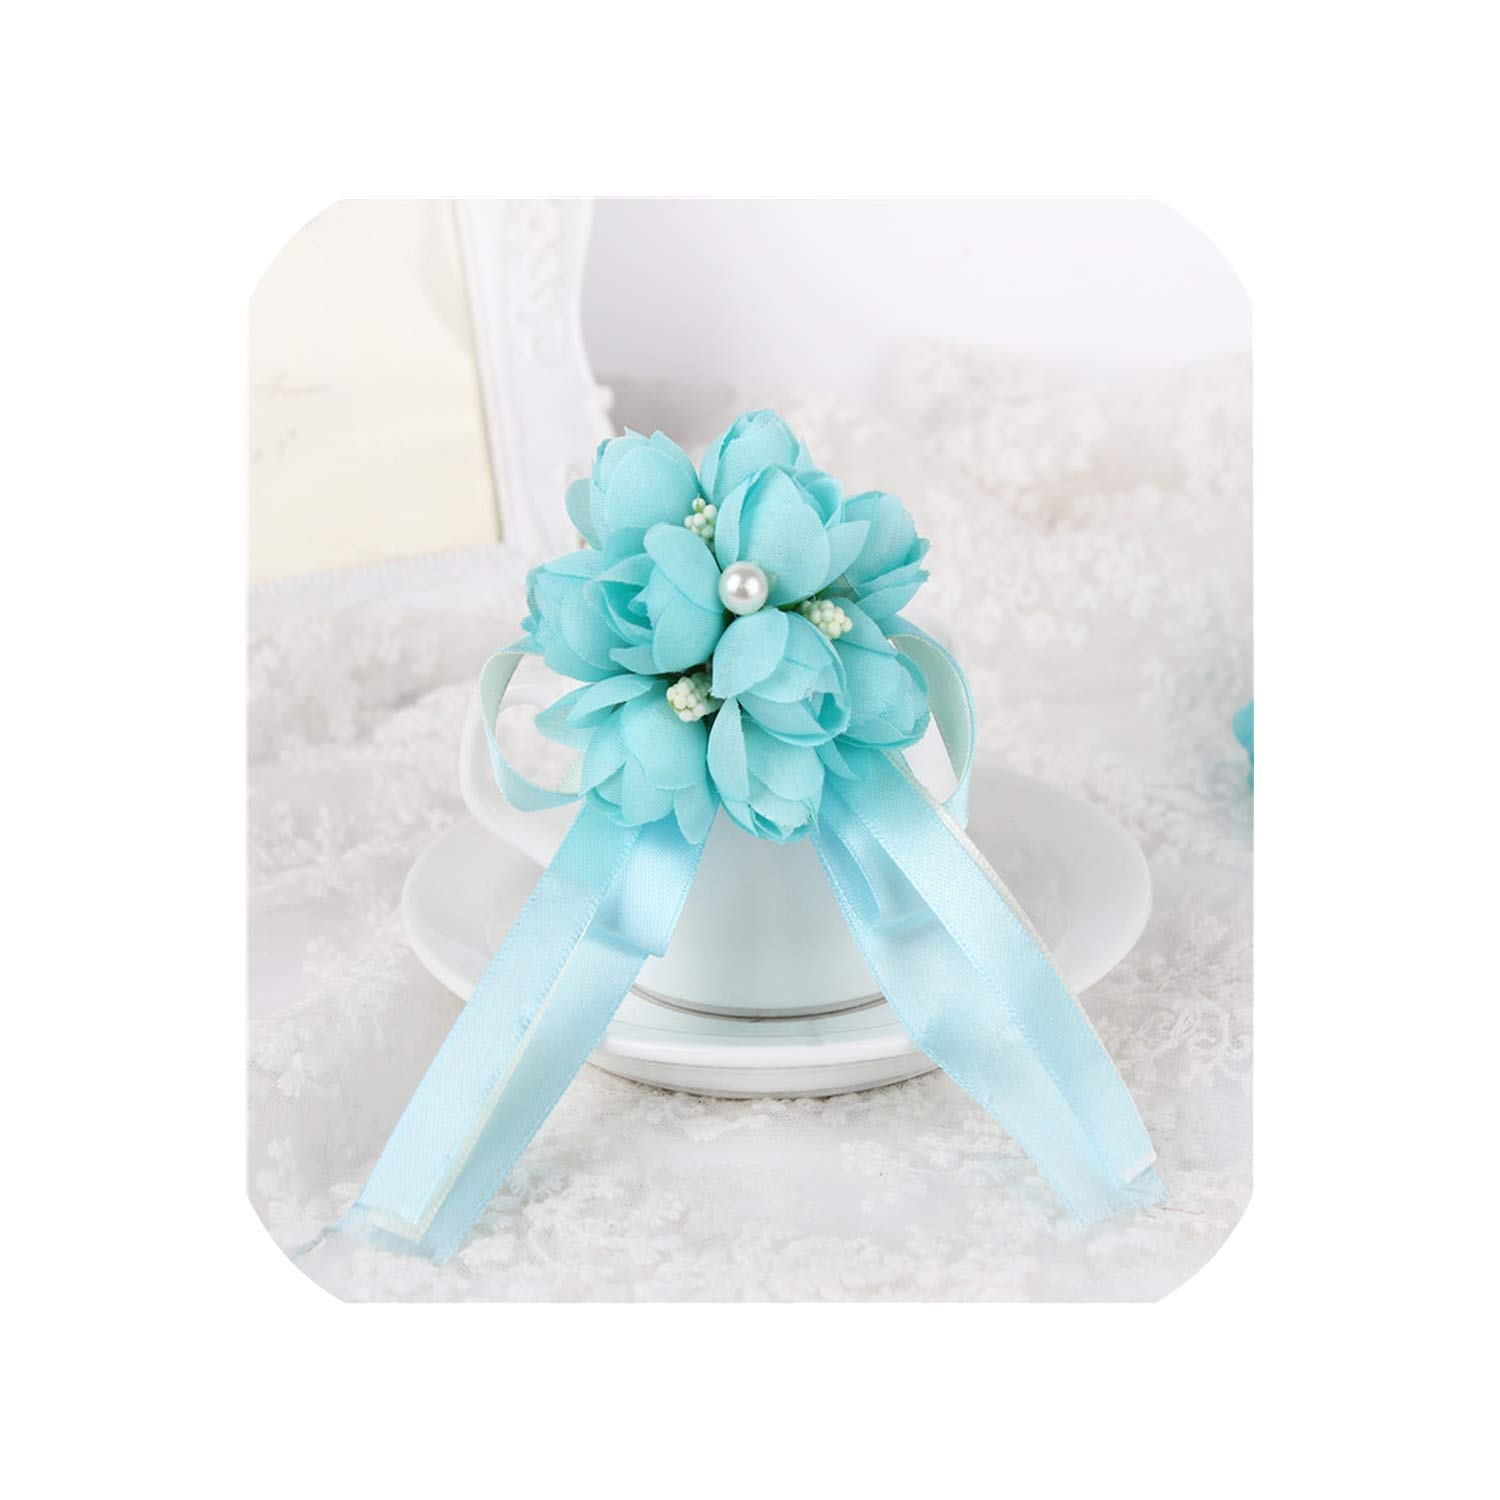 8034b2c77c Pink-star 10 Colors Rose Wrist Corsage Bridesmaid Sisters Hand Flowers  Artificial Bride Flowers for Wedding Party Decoration Bridal Prom,Tiffany  Blue